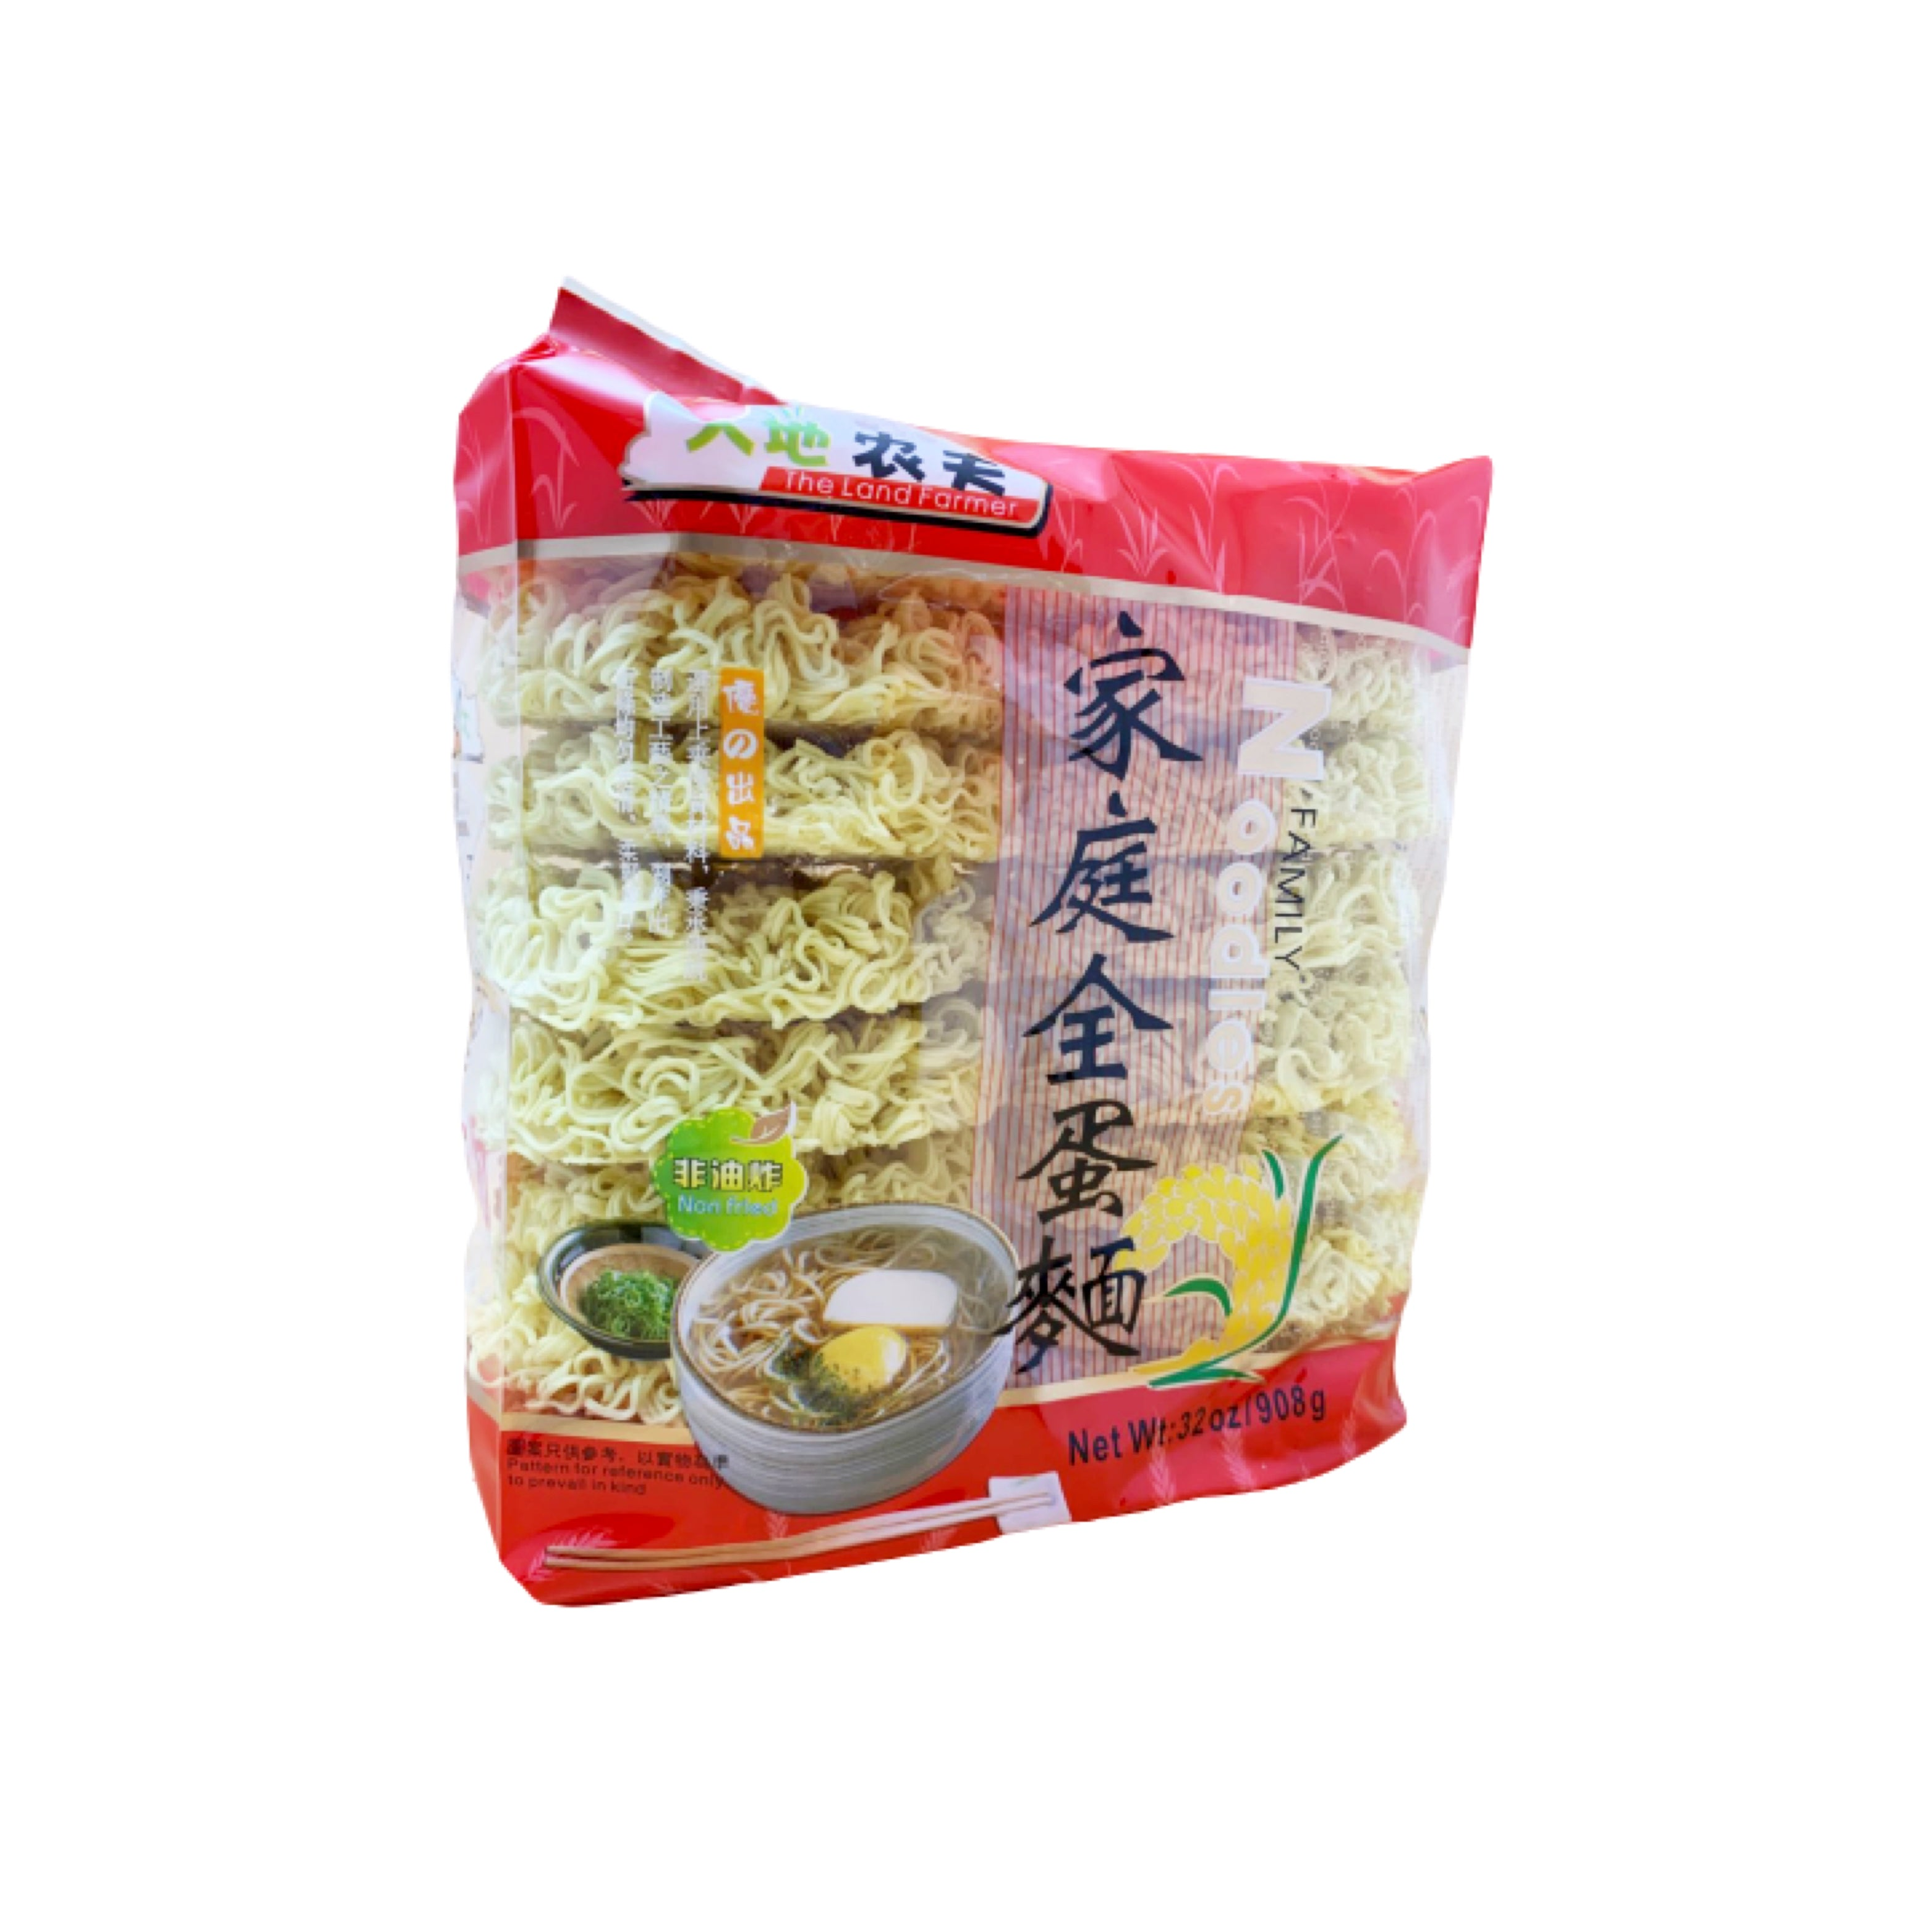 The Land Farmer Dried Noodles 大地农夫